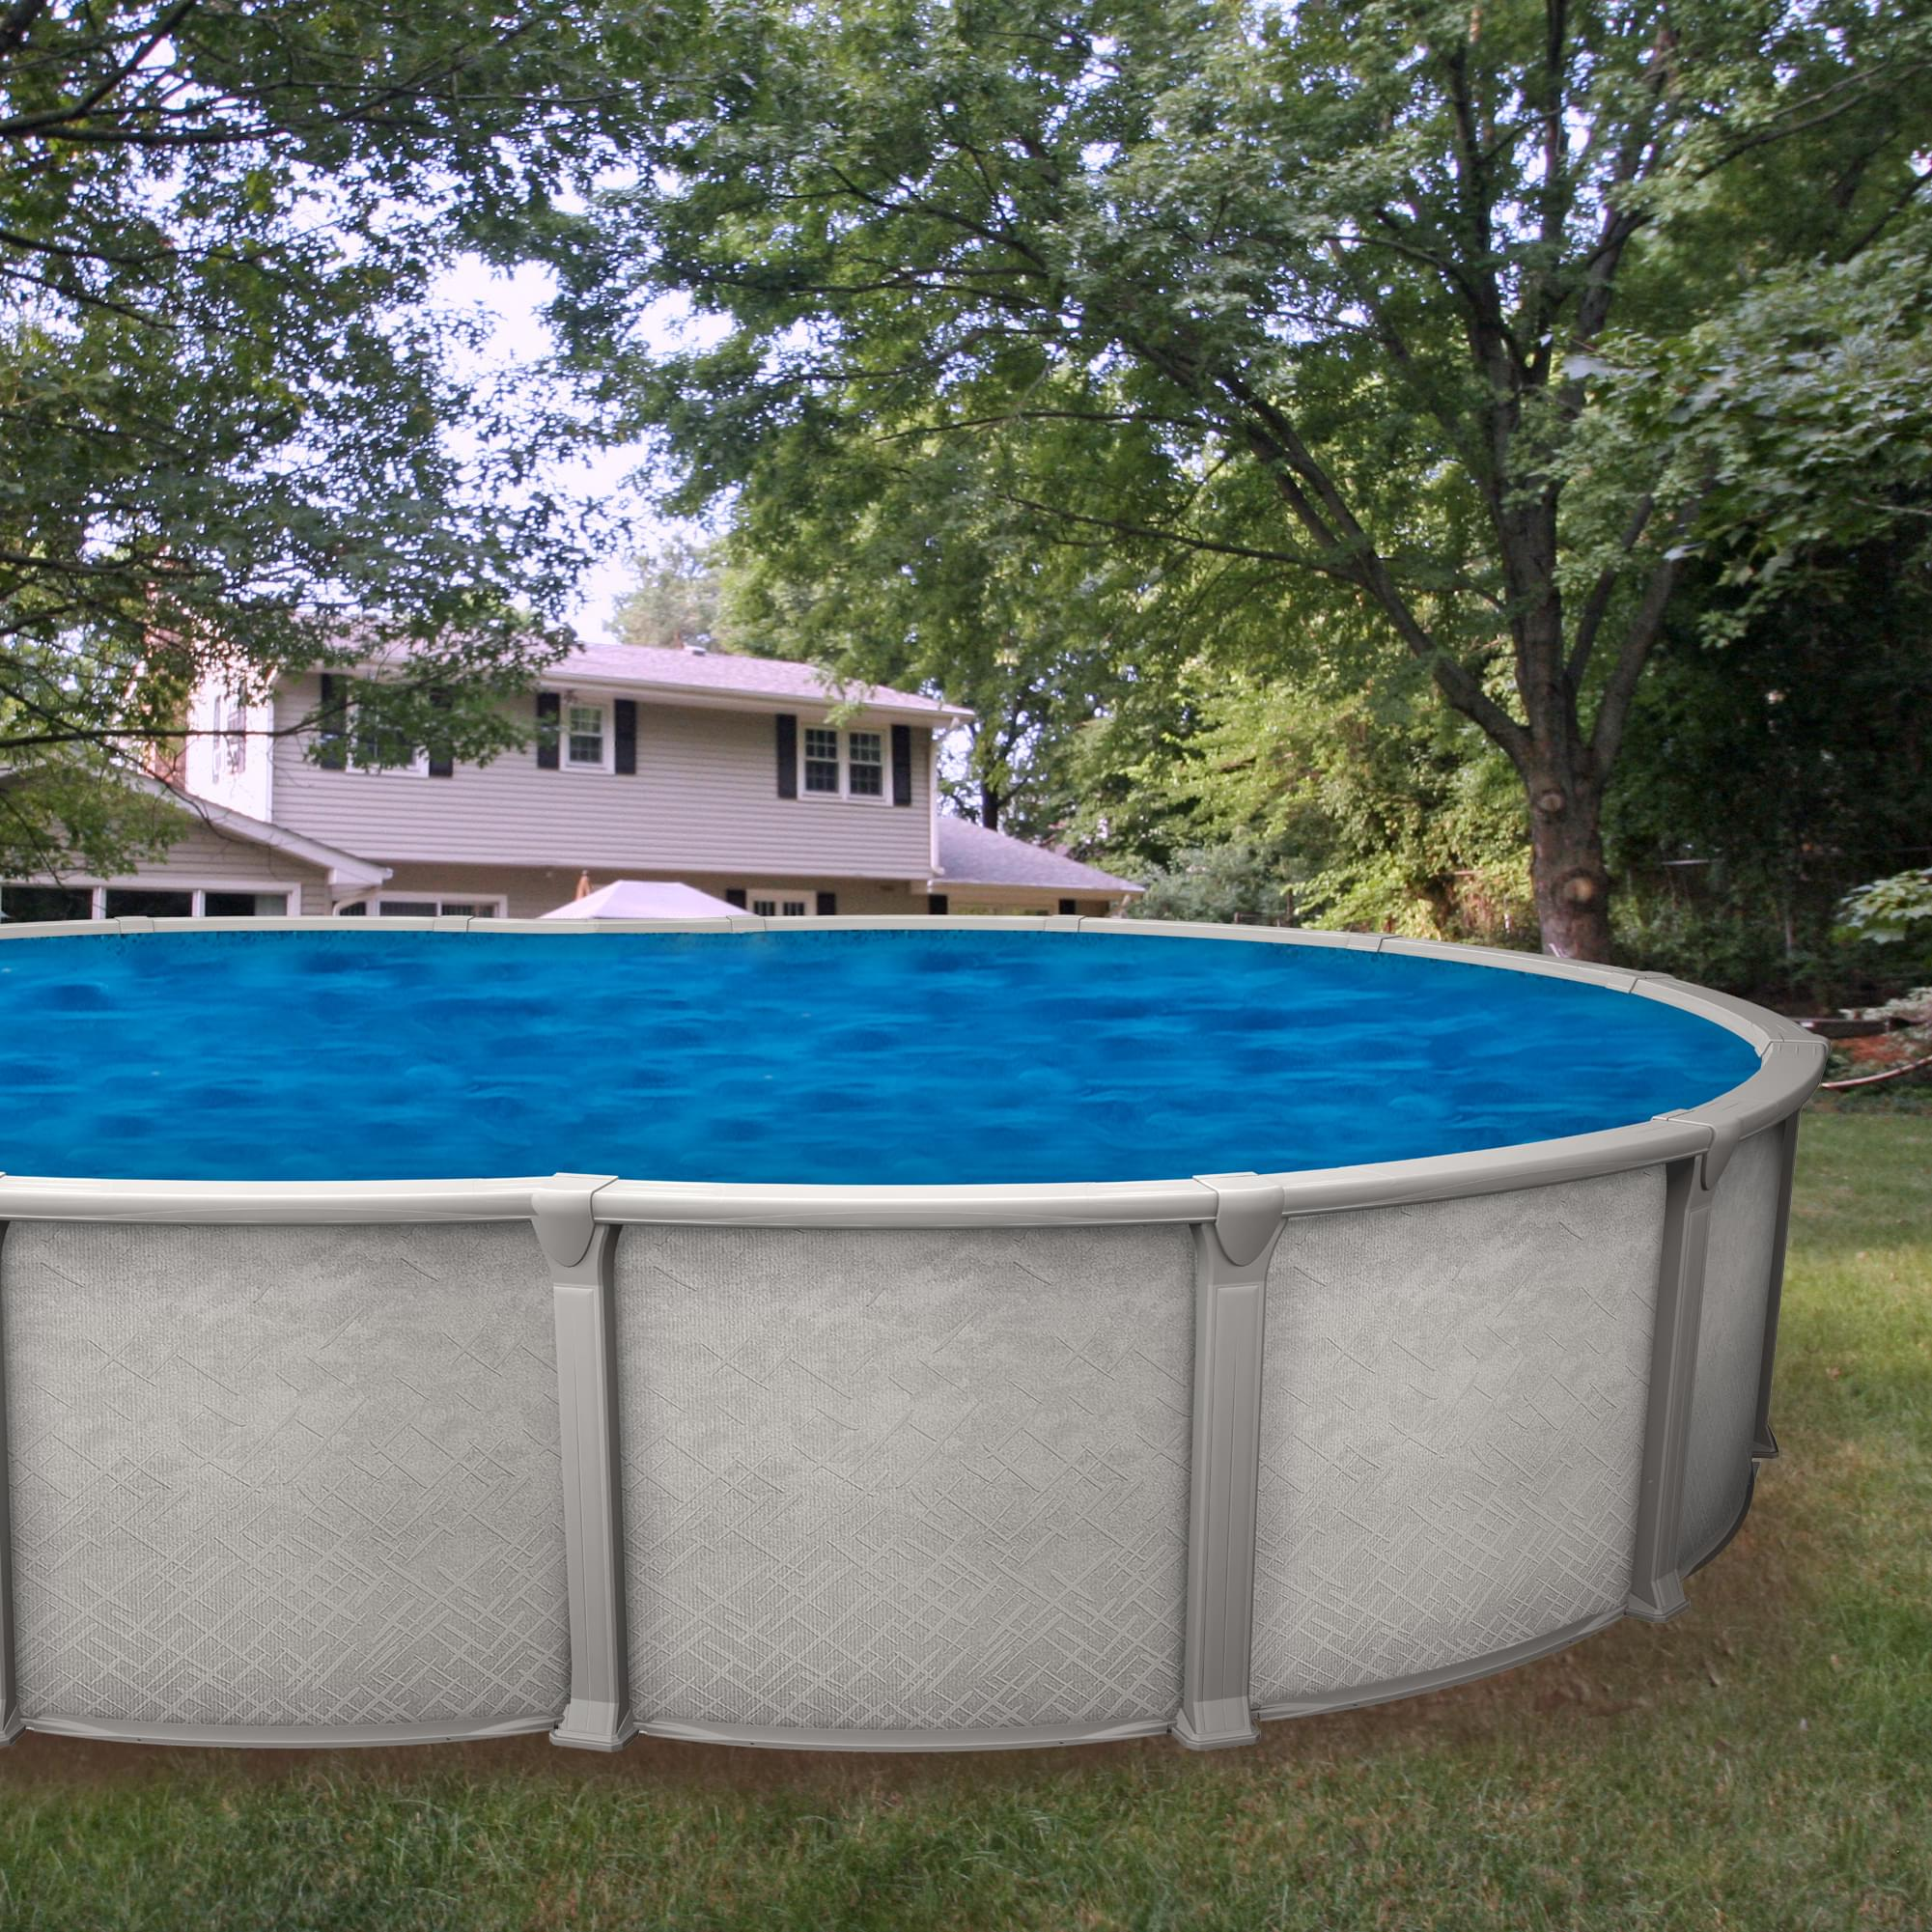 Galaxy 18 x 33 ft oval buttress free pool package pool for Aqua 2000 piscine